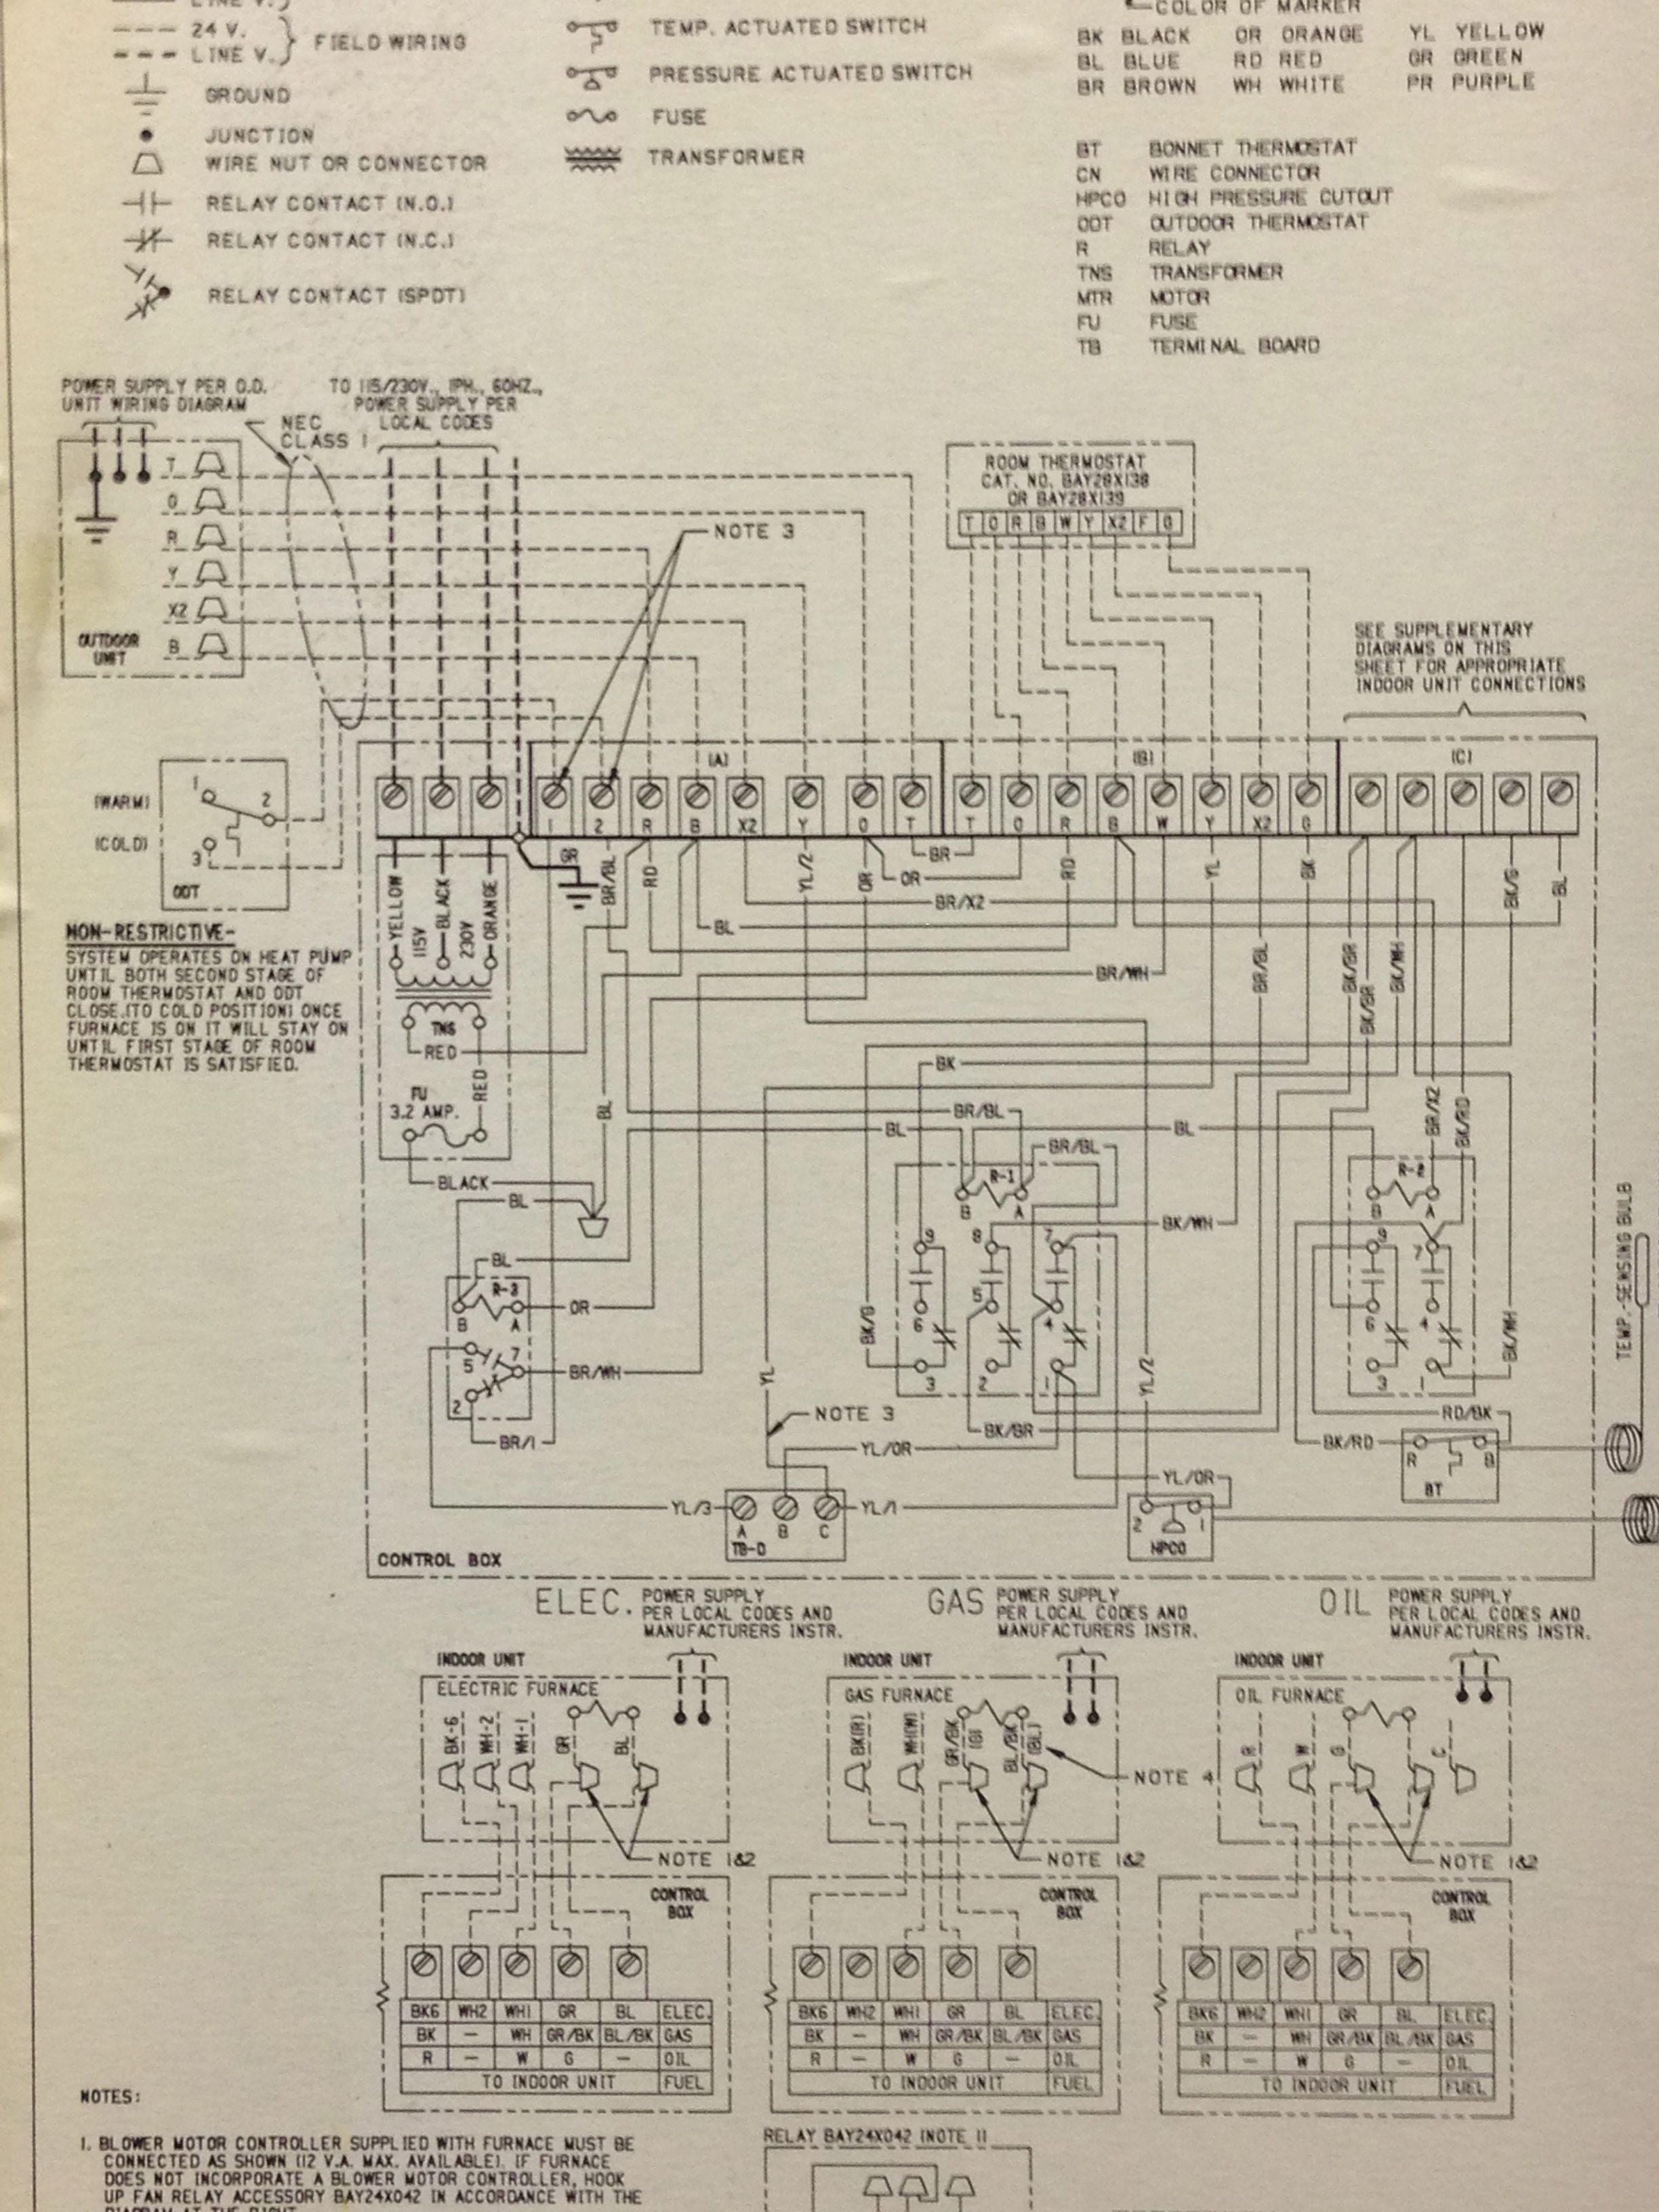 General Electric Weathertron Thermostat Wiring Diagram